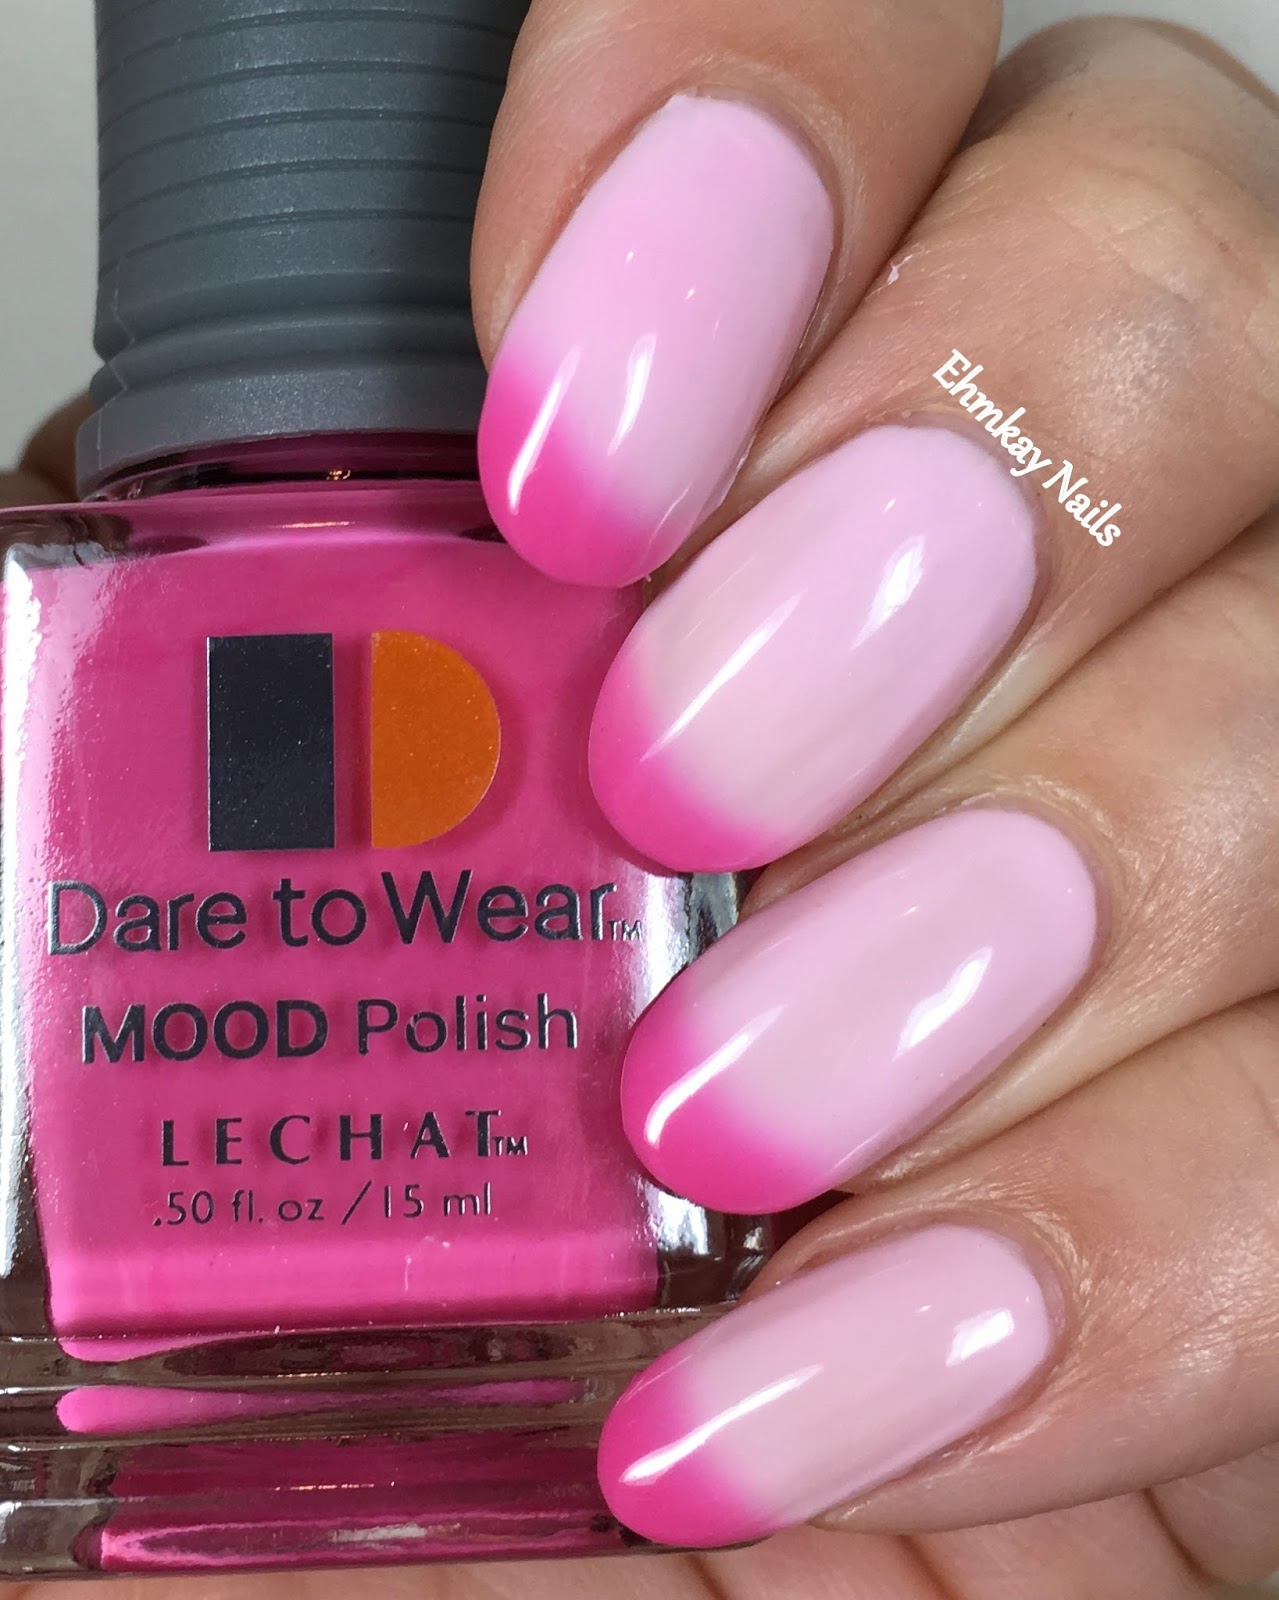 ehmkay nails: Lechat Dare to Wear Mood Polishes, Swatches and Review